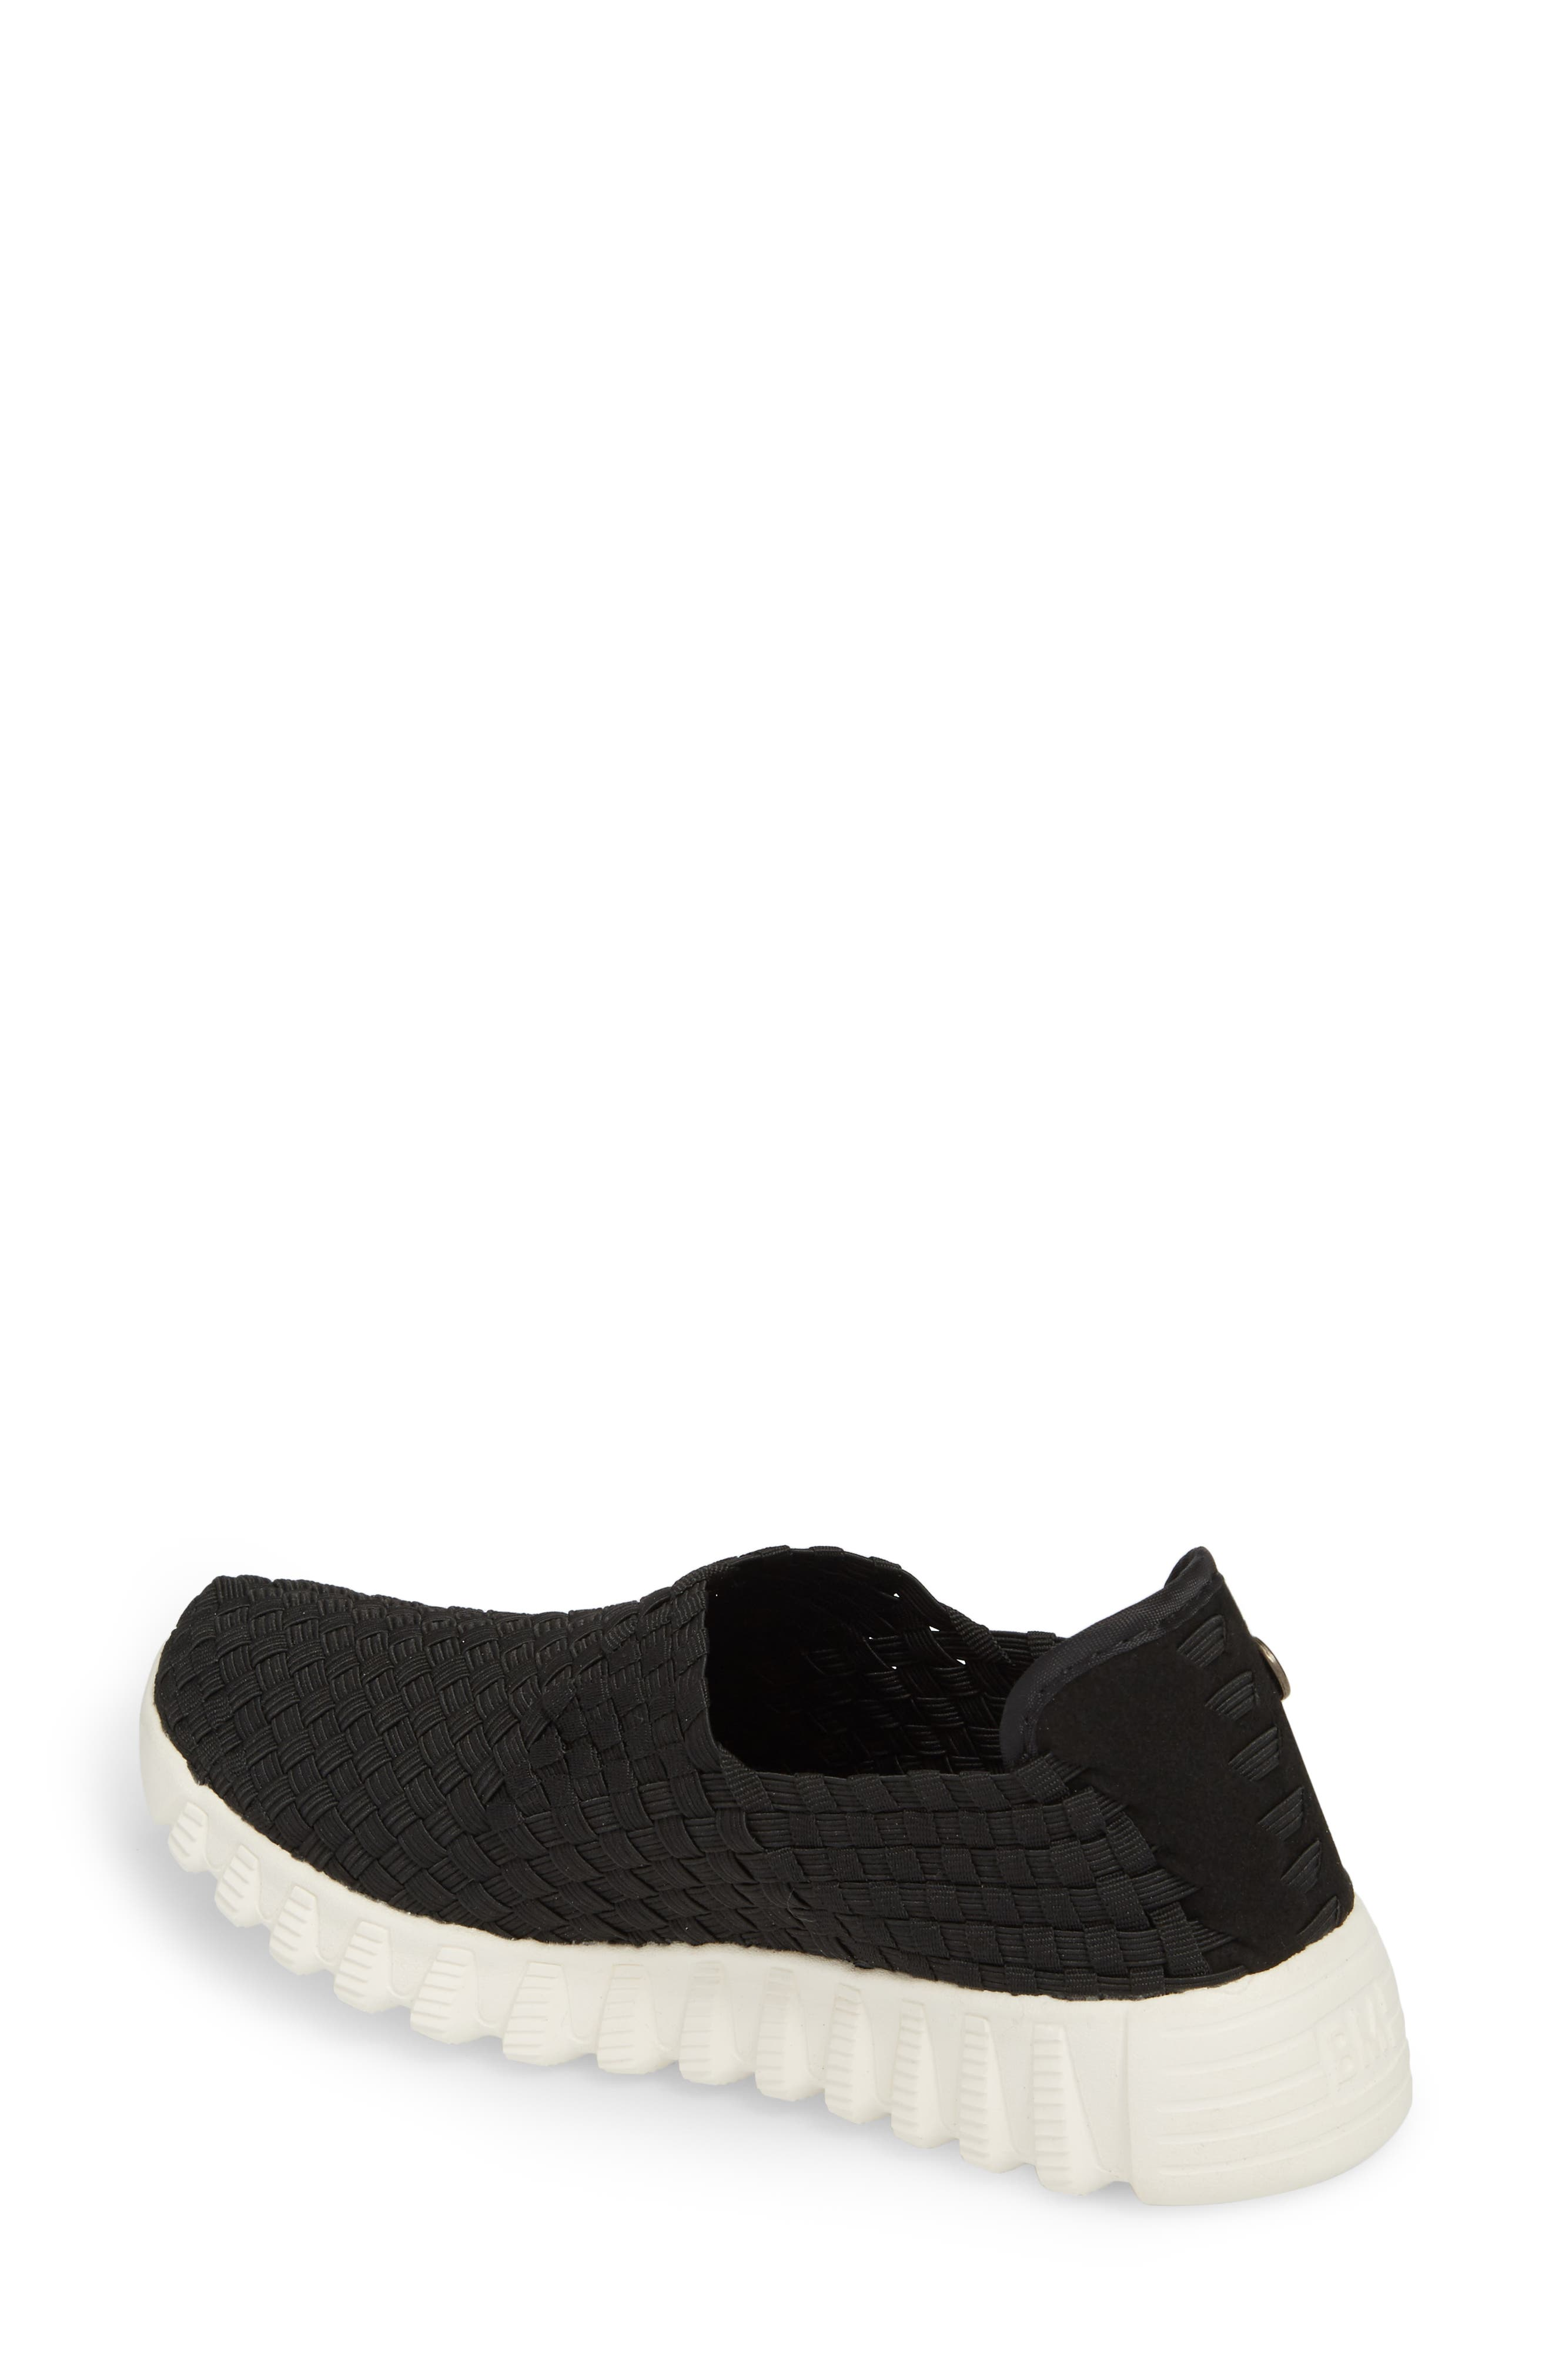 Woven Slip-On Sneaker,                             Alternate thumbnail 2, color,                             BLACK